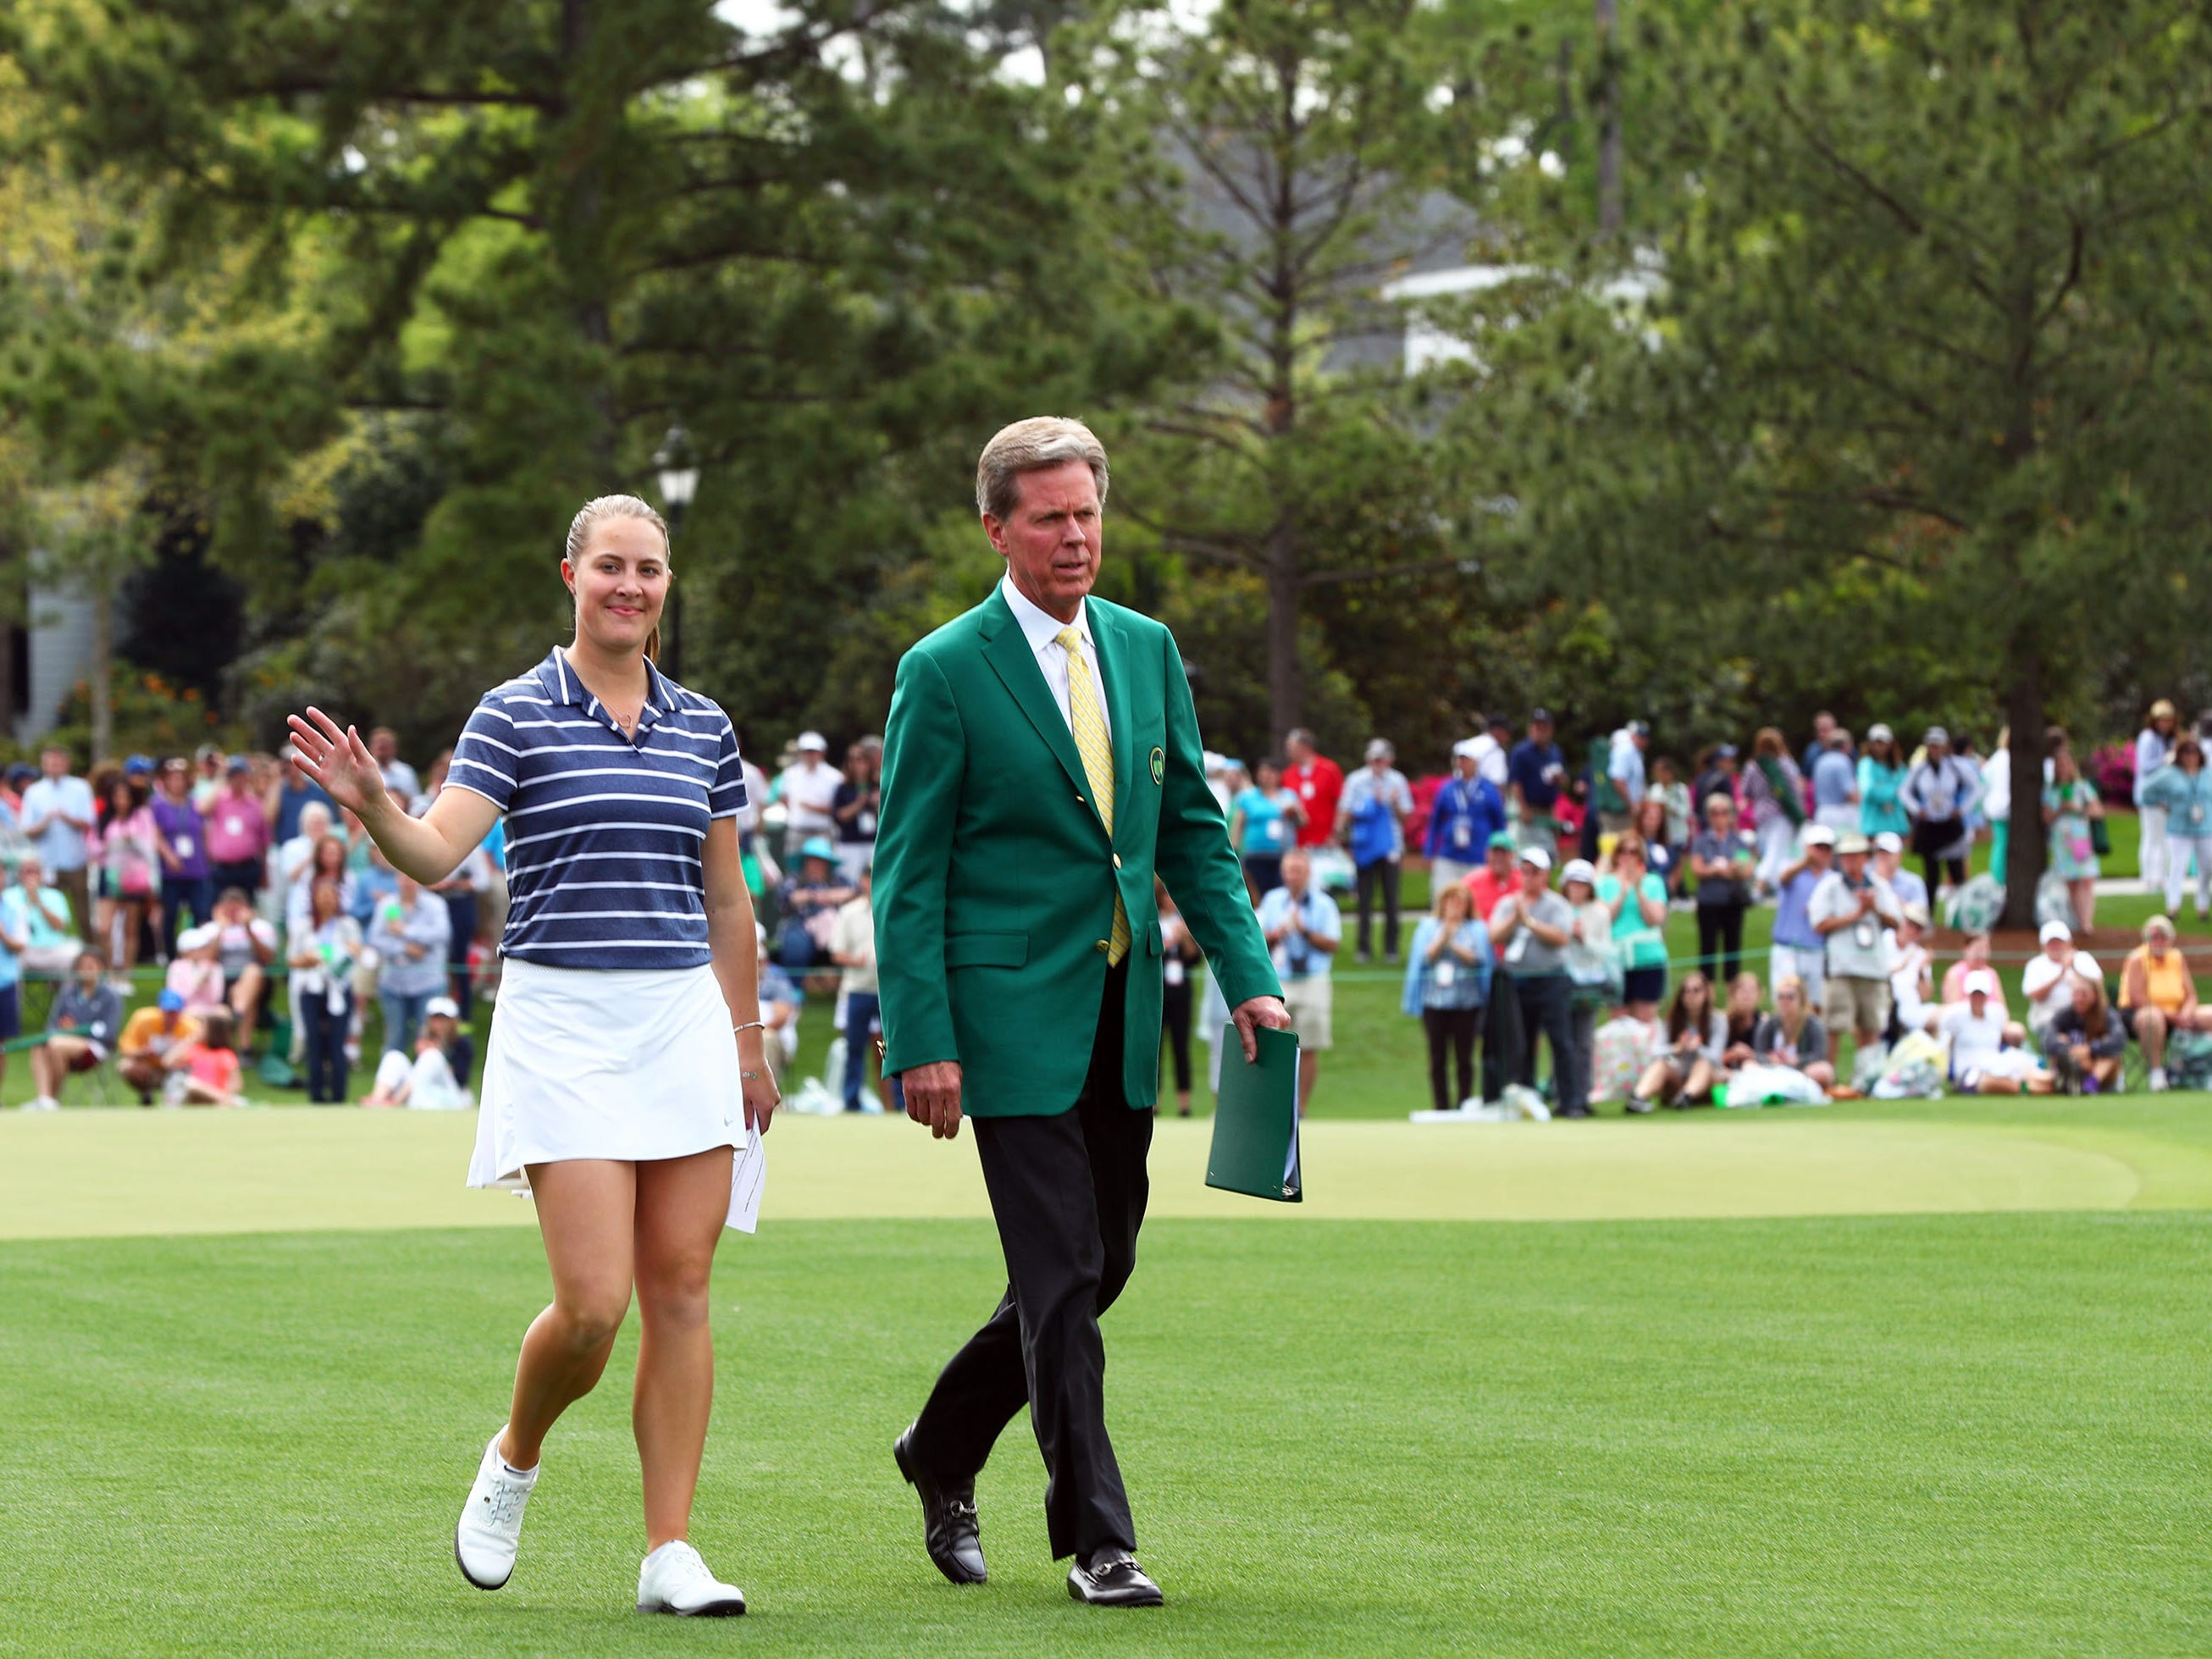 Apr 6, 2019: Jennifer Kupcho of Westminster, Colo. is escorted to the trophy presentation ceremony by Fred Ridley, Chairman of Augusta National Golf Club and the Masters Tournament (right) after winning the Augusta National Women's Amateur golf tournament at Augusta National GC.